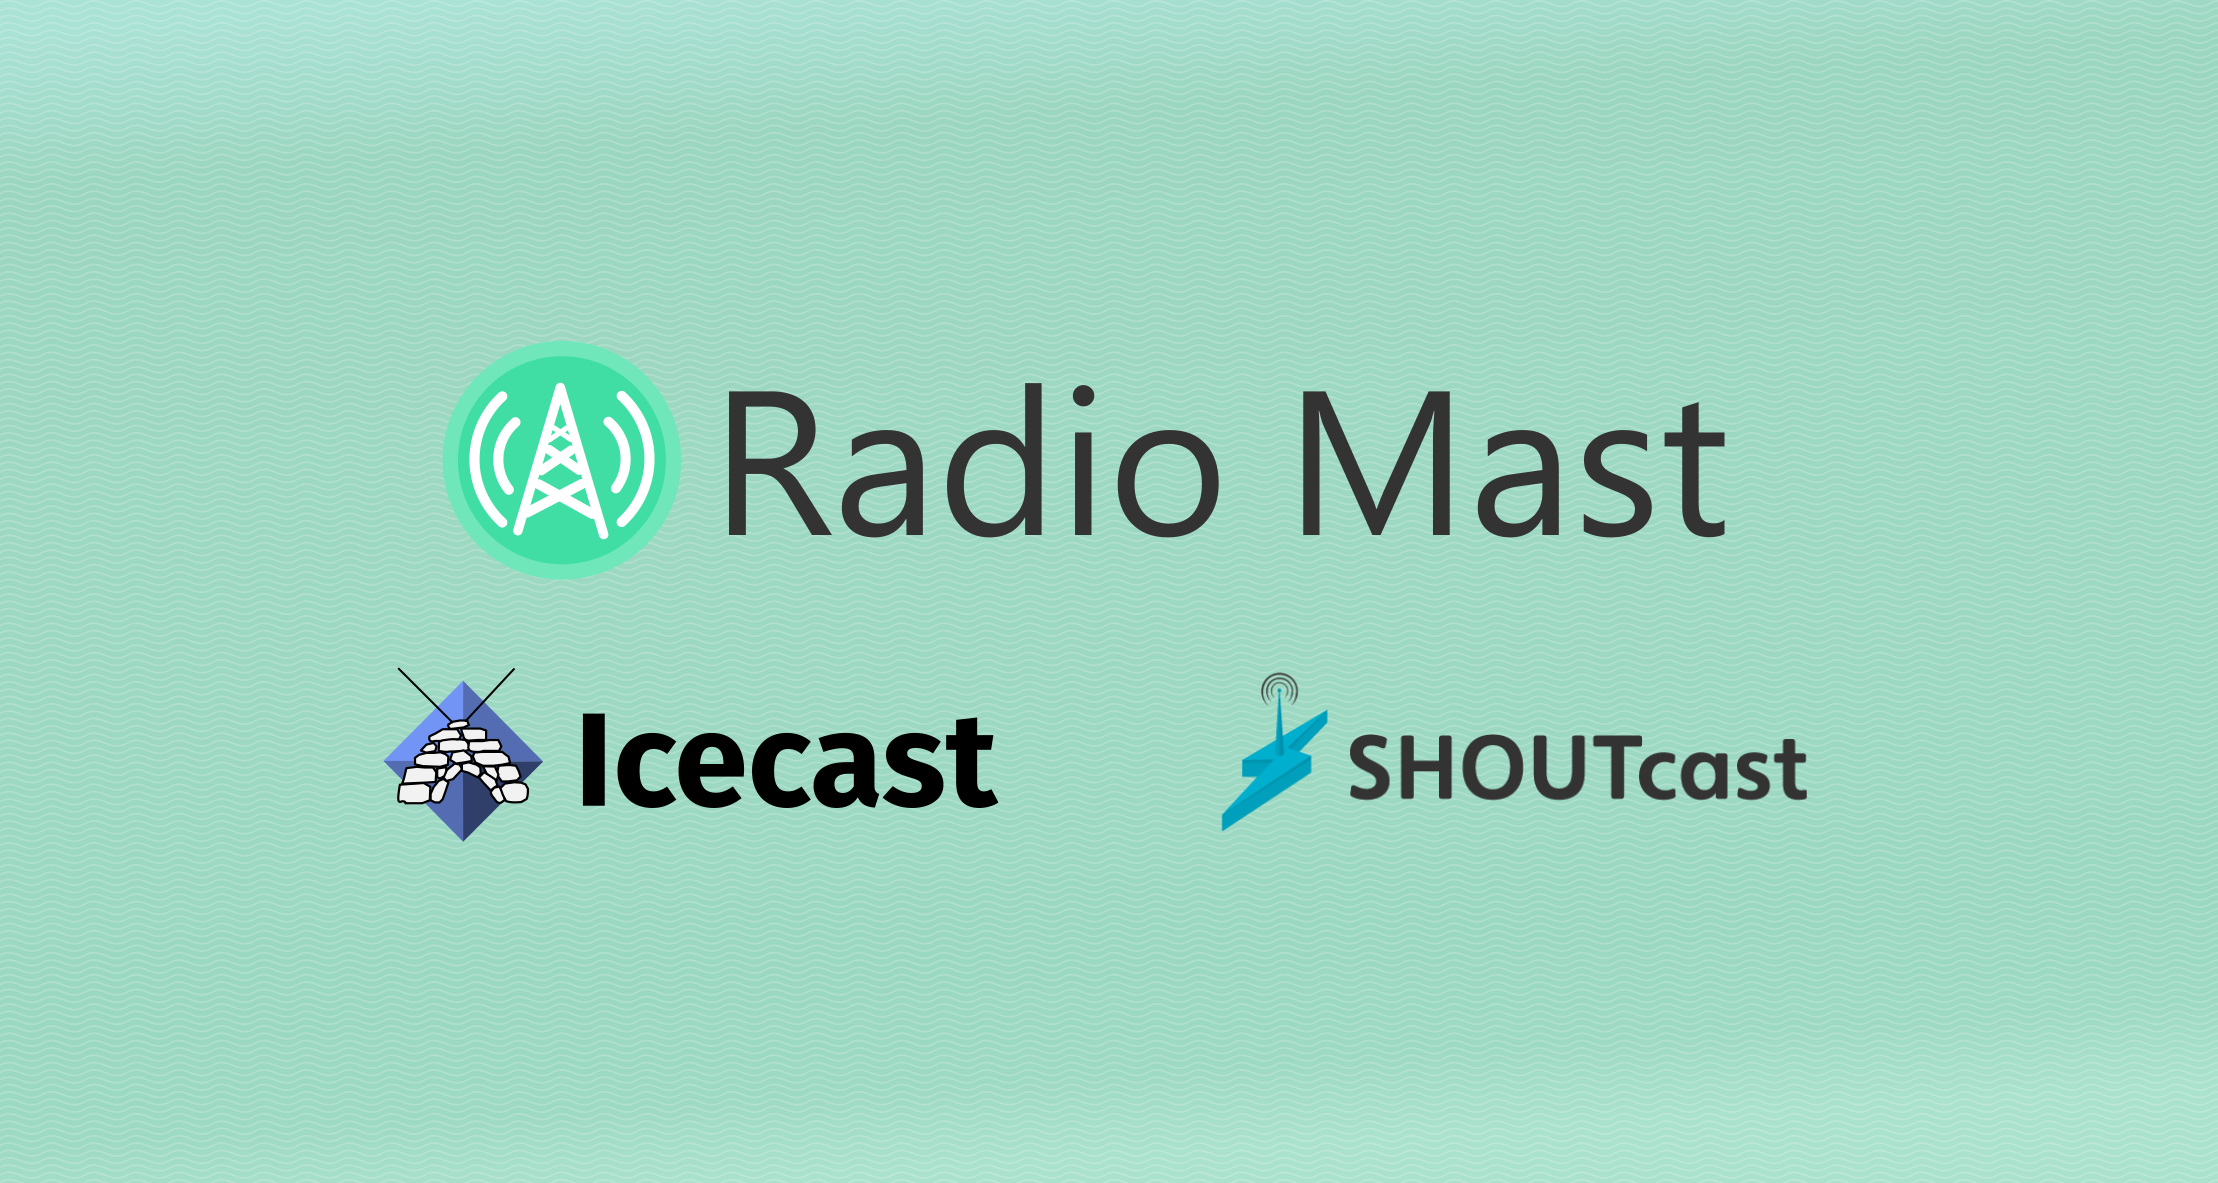 Publish your Internet Radio Stream to the Icecast and SHOUTcast Directories